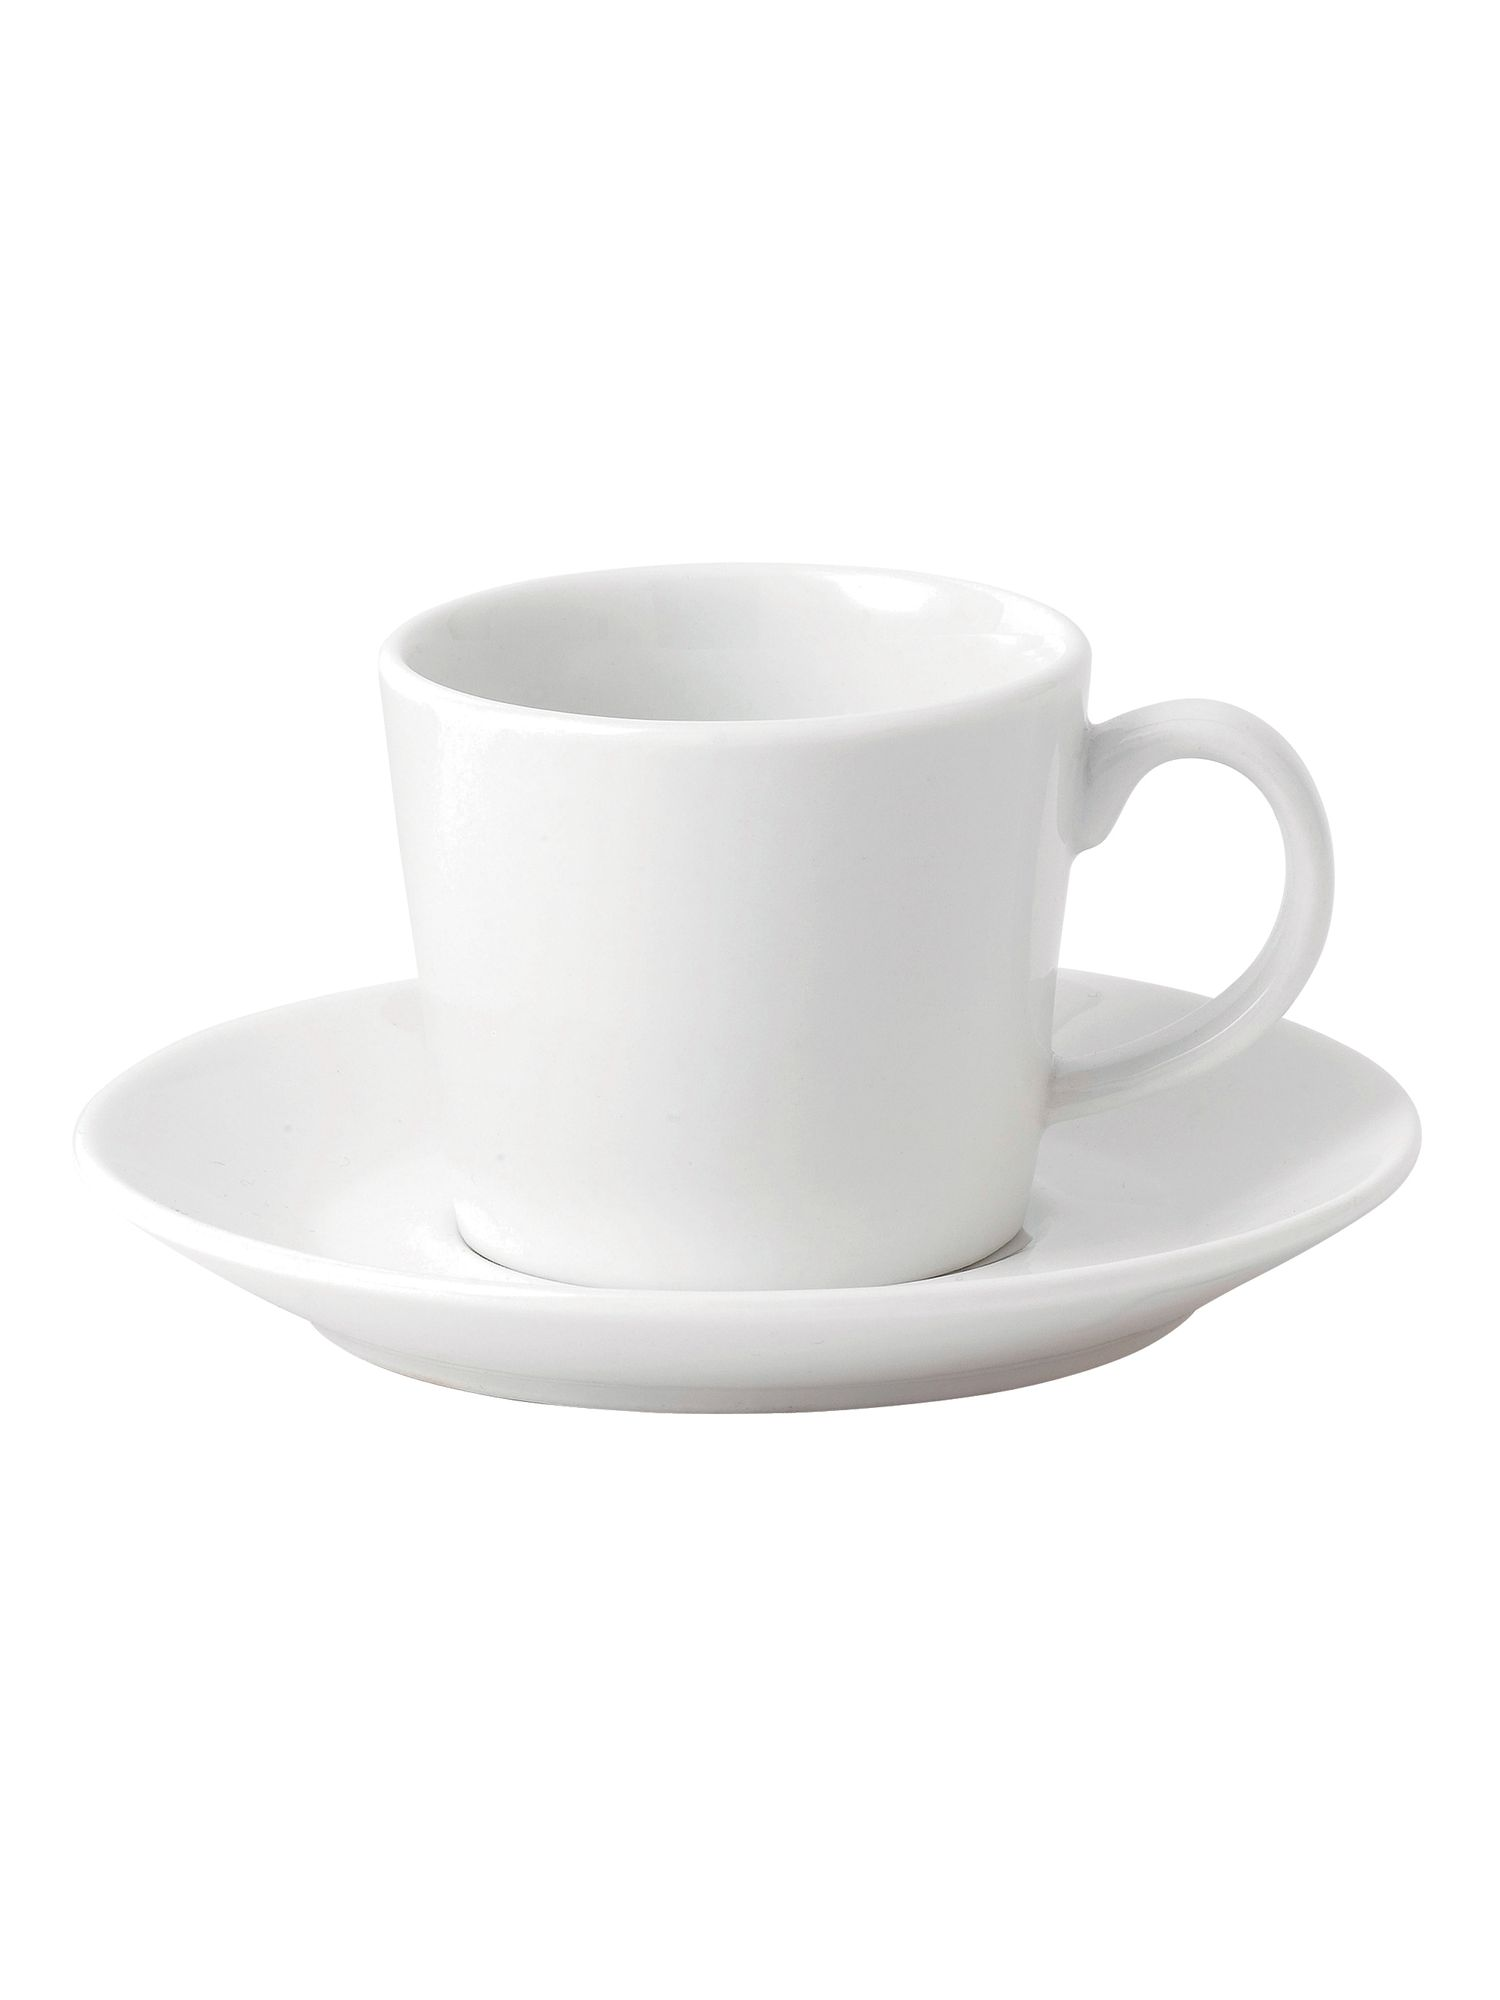 Fable white teacup and saucer